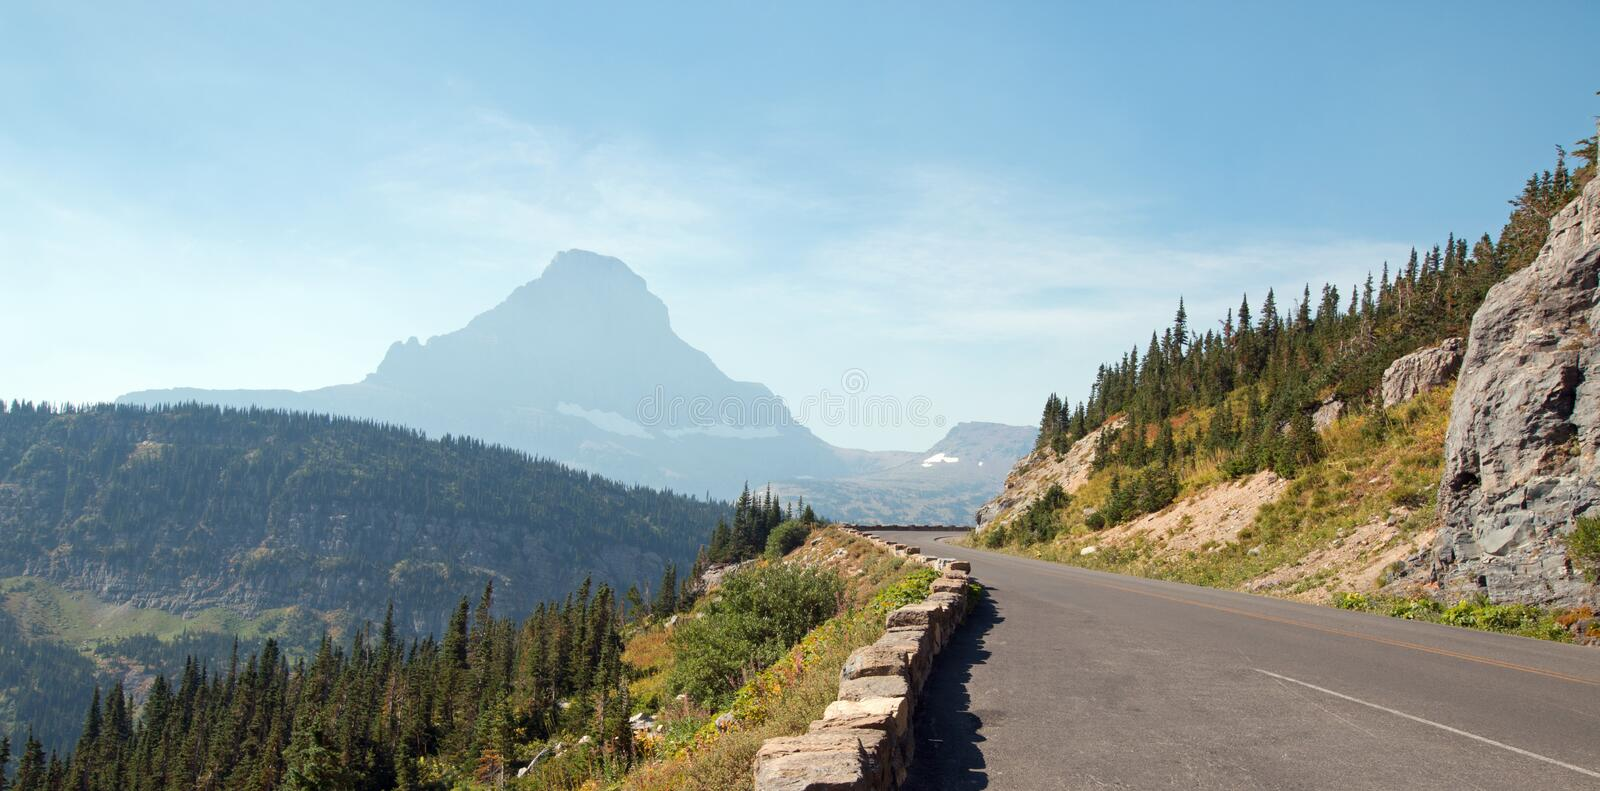 CLEMENTS MOUNTAIN AT THE TOP OF LOGAN PASS ON THE GOING TO THE SUN HIGHWAY UNDER CIRRUS CLOUDS IN GLACIER NATIONAL PARK USA. CLEMENTS MOUNTAIN AT THE TOP OF royalty free stock photography